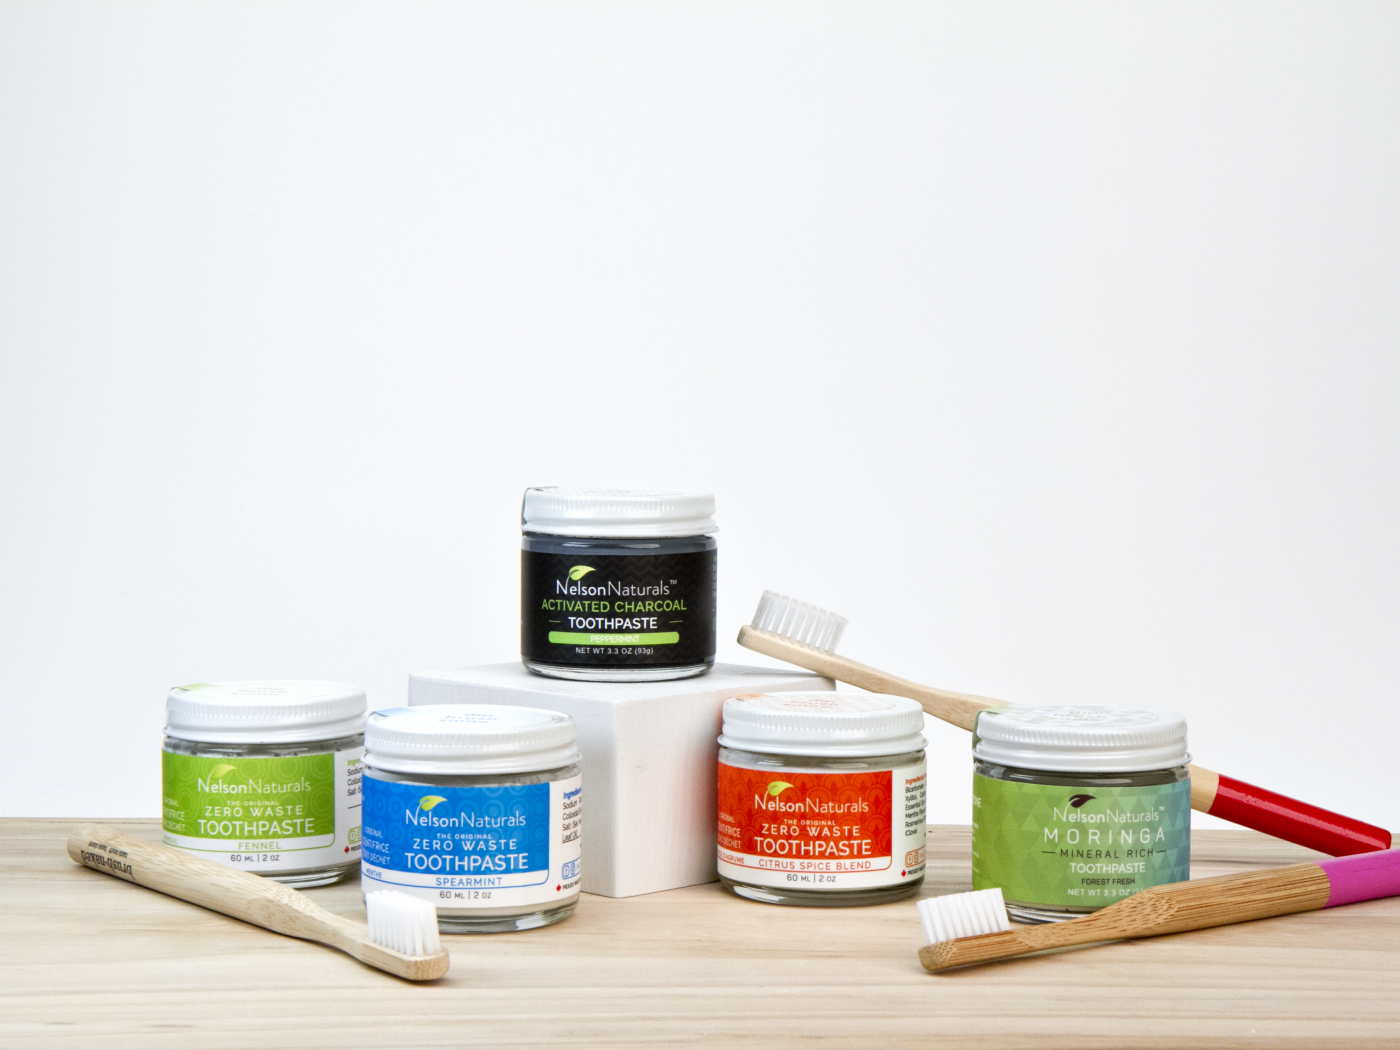 Nelson Naturals Toothpaste Business is a business for sale in BC.